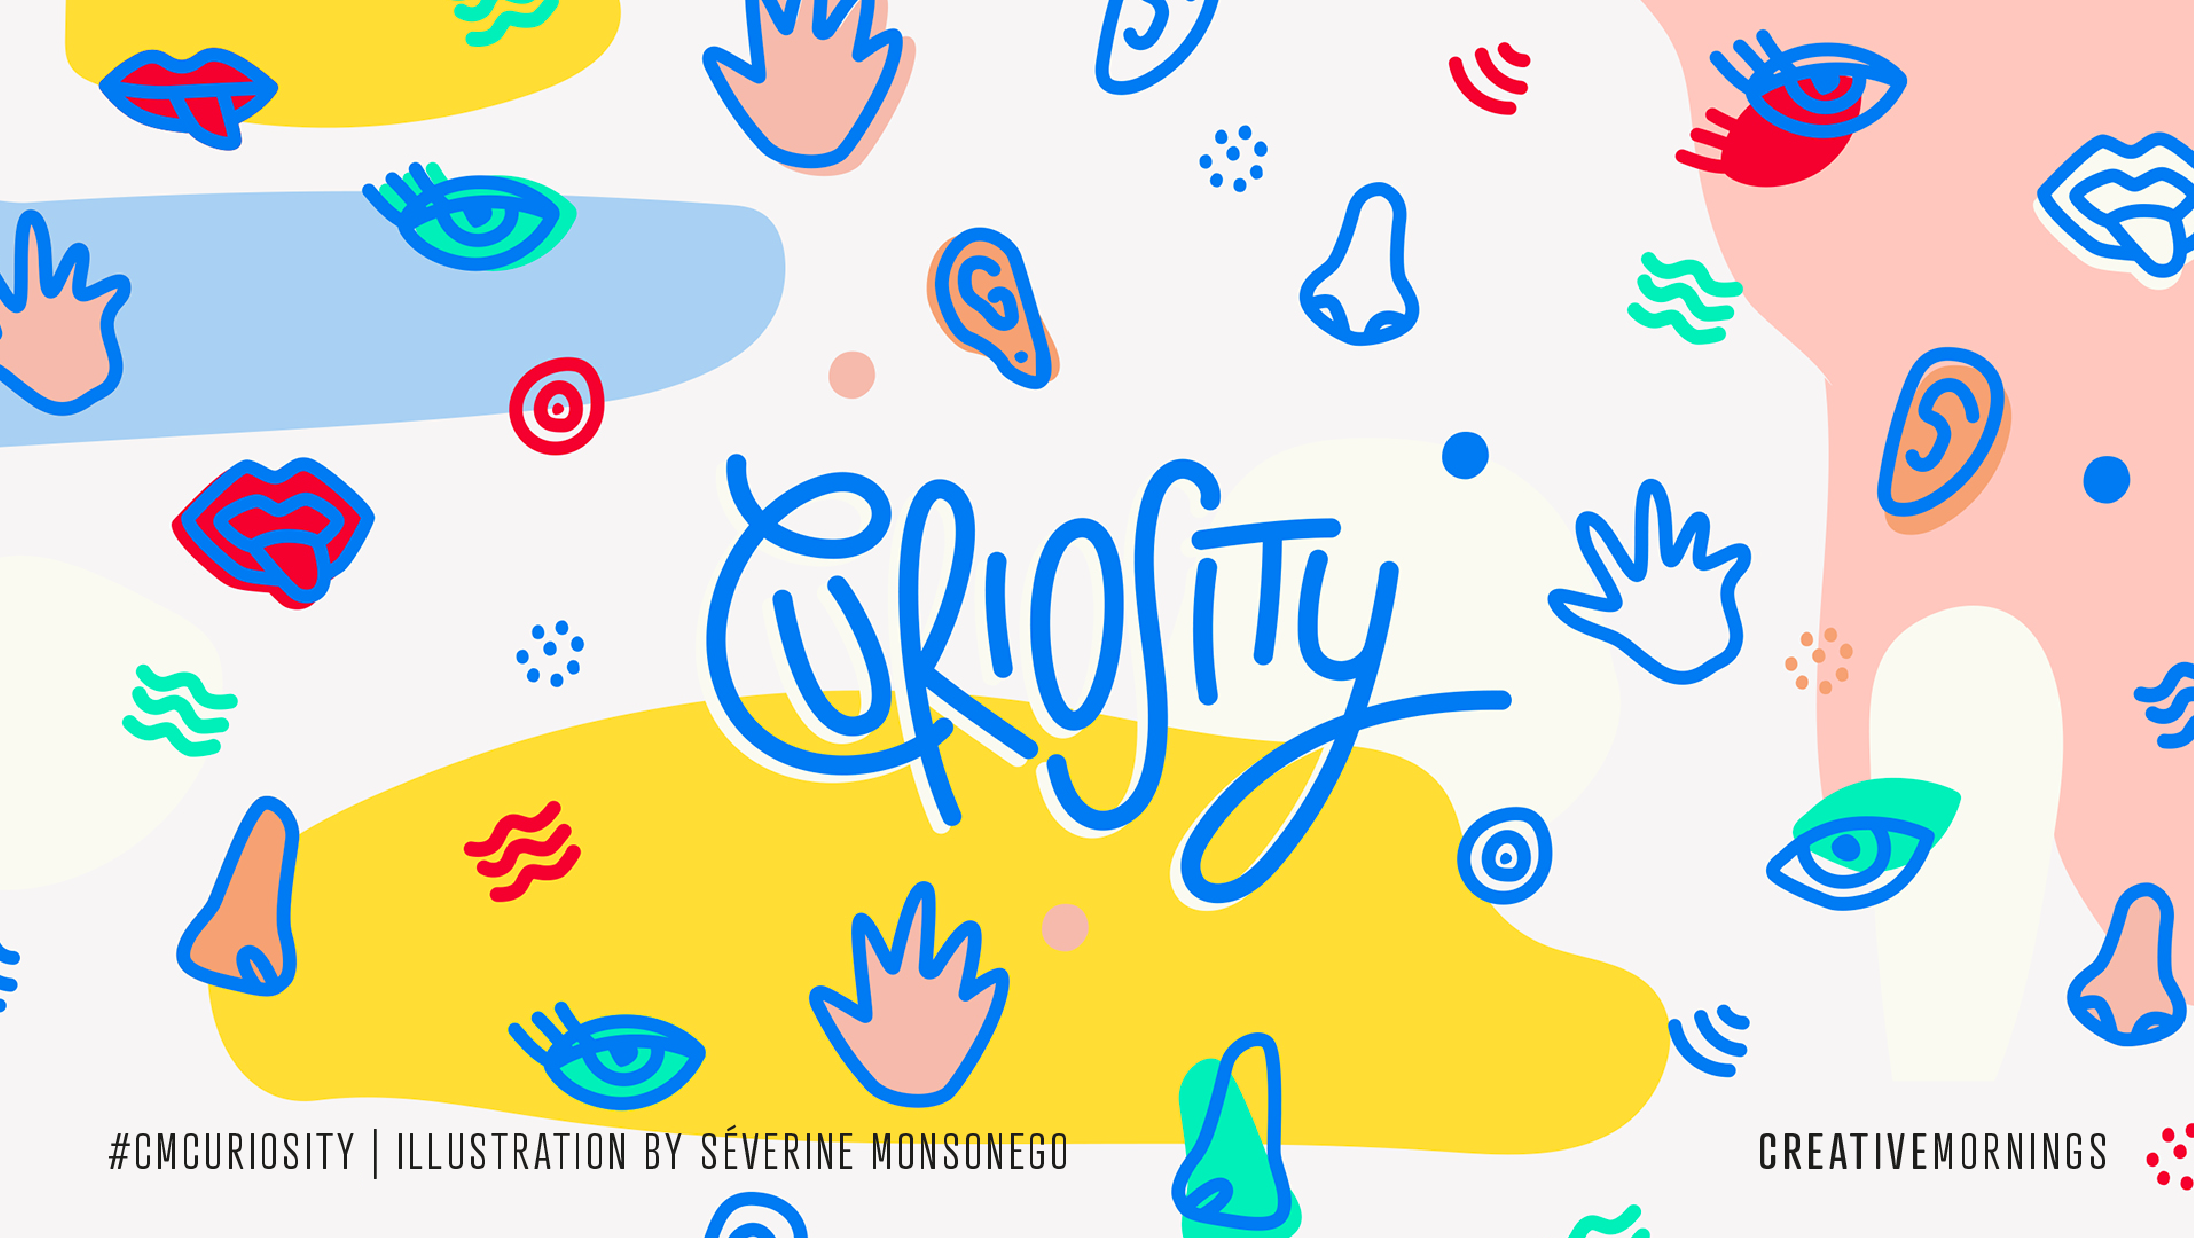 Curiosity - CreativeMornings themes